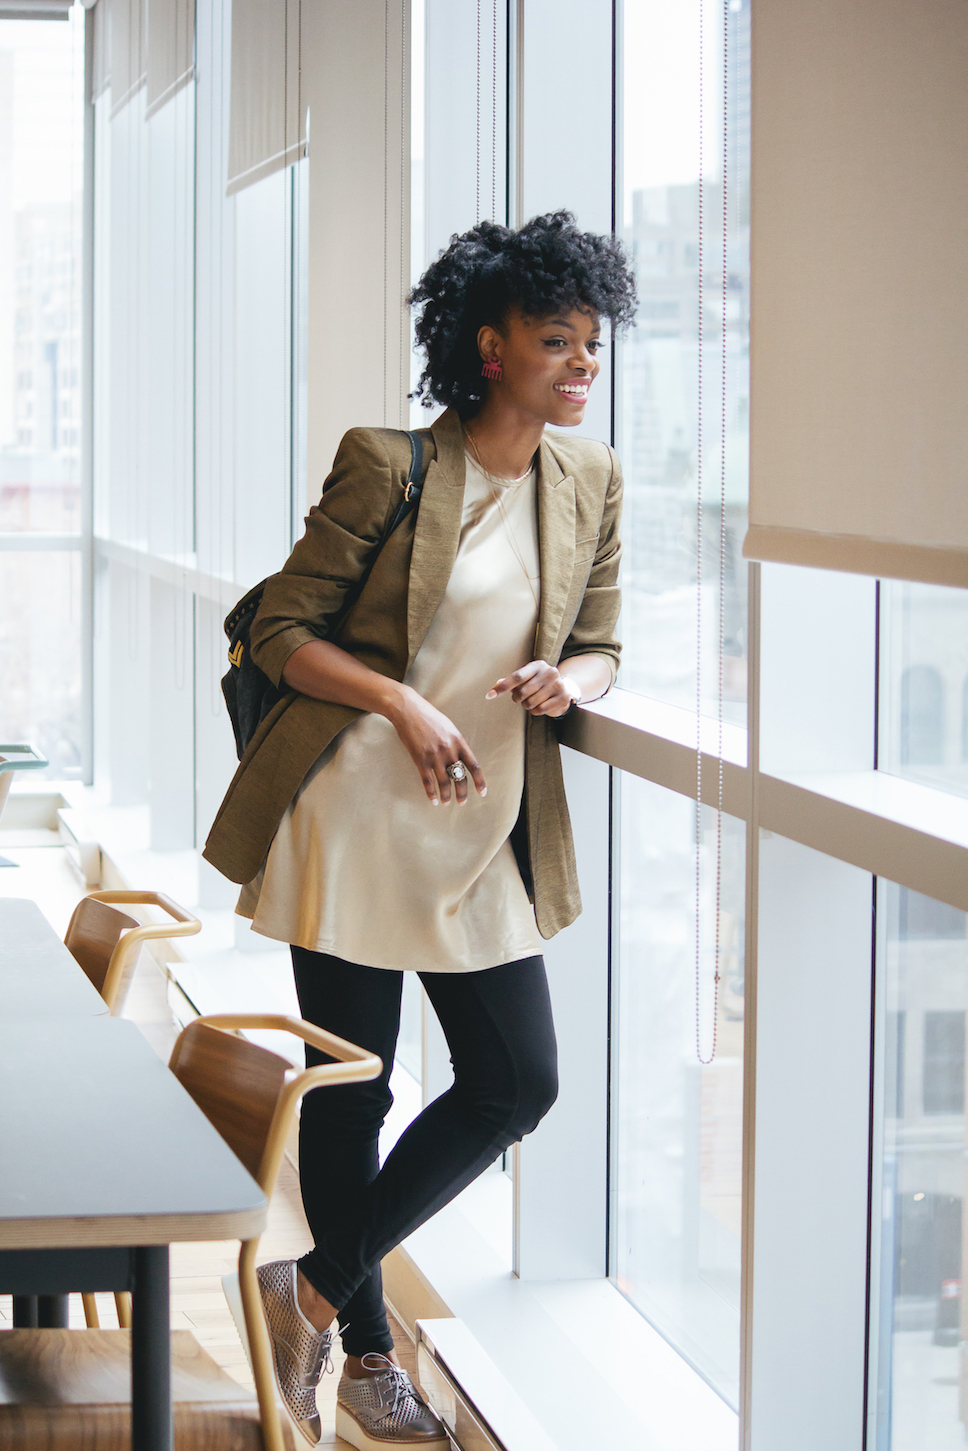 Neutral chic business casual with metallic sneakers // Week Of Outfits Series: A Week Of Well-Crafted & Beautiful Outfits With Kathleen Elie, Founder Of Conscious & Chic on The Good Trade